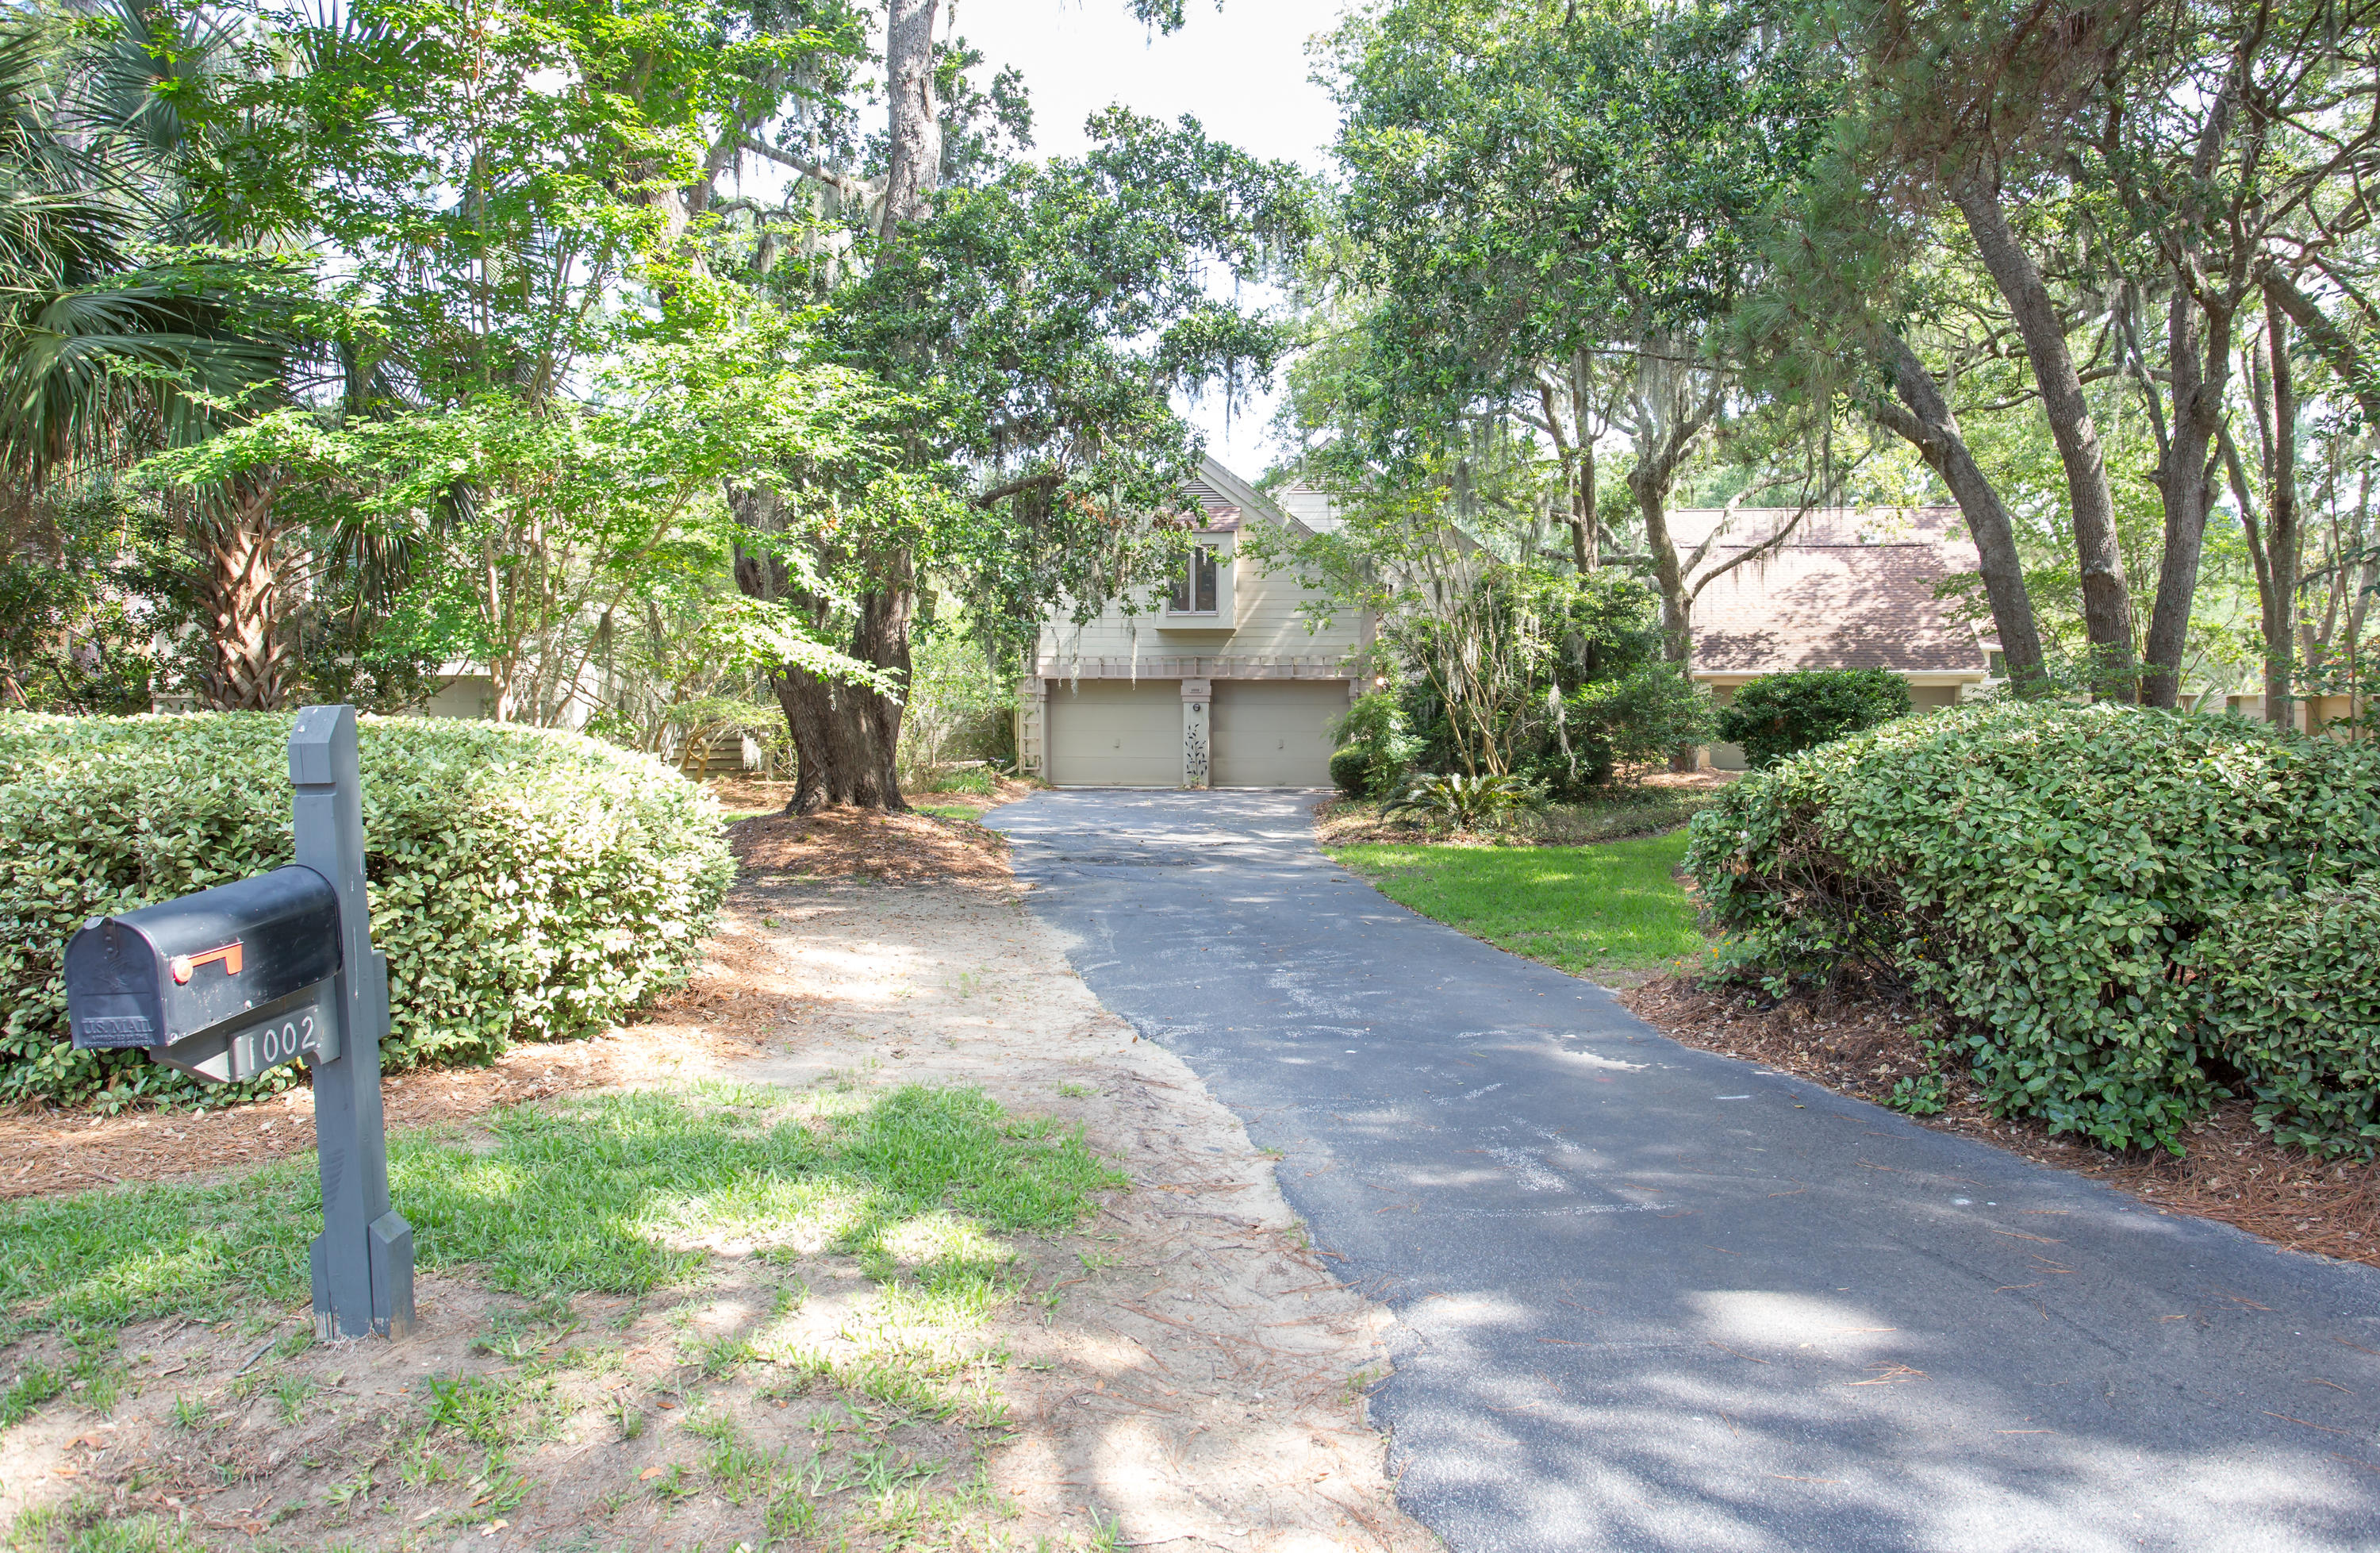 Marsh Pointe Homes For Sale - 1002 Embassy Row Way, Seabrook Island, SC - 0